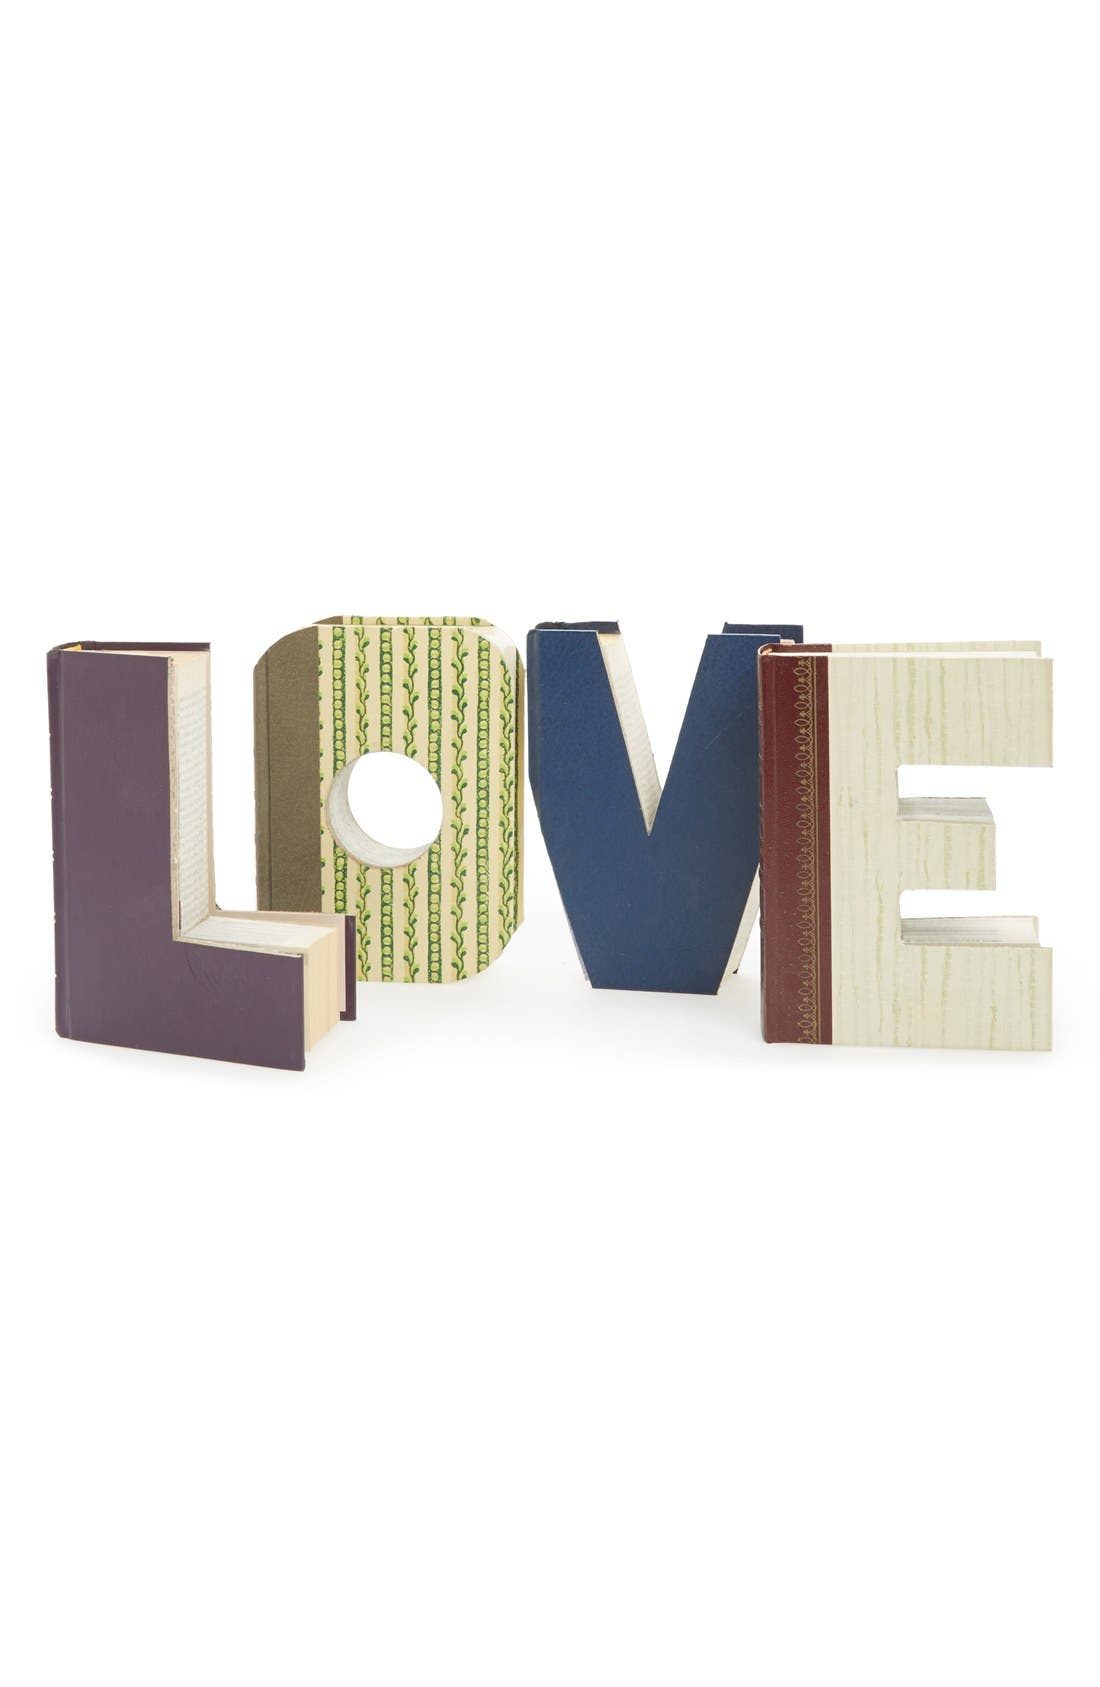 'Love - One of a Kind' Hand-Carved Recycled Book Shelf Art,                             Main thumbnail 1, color,                             200